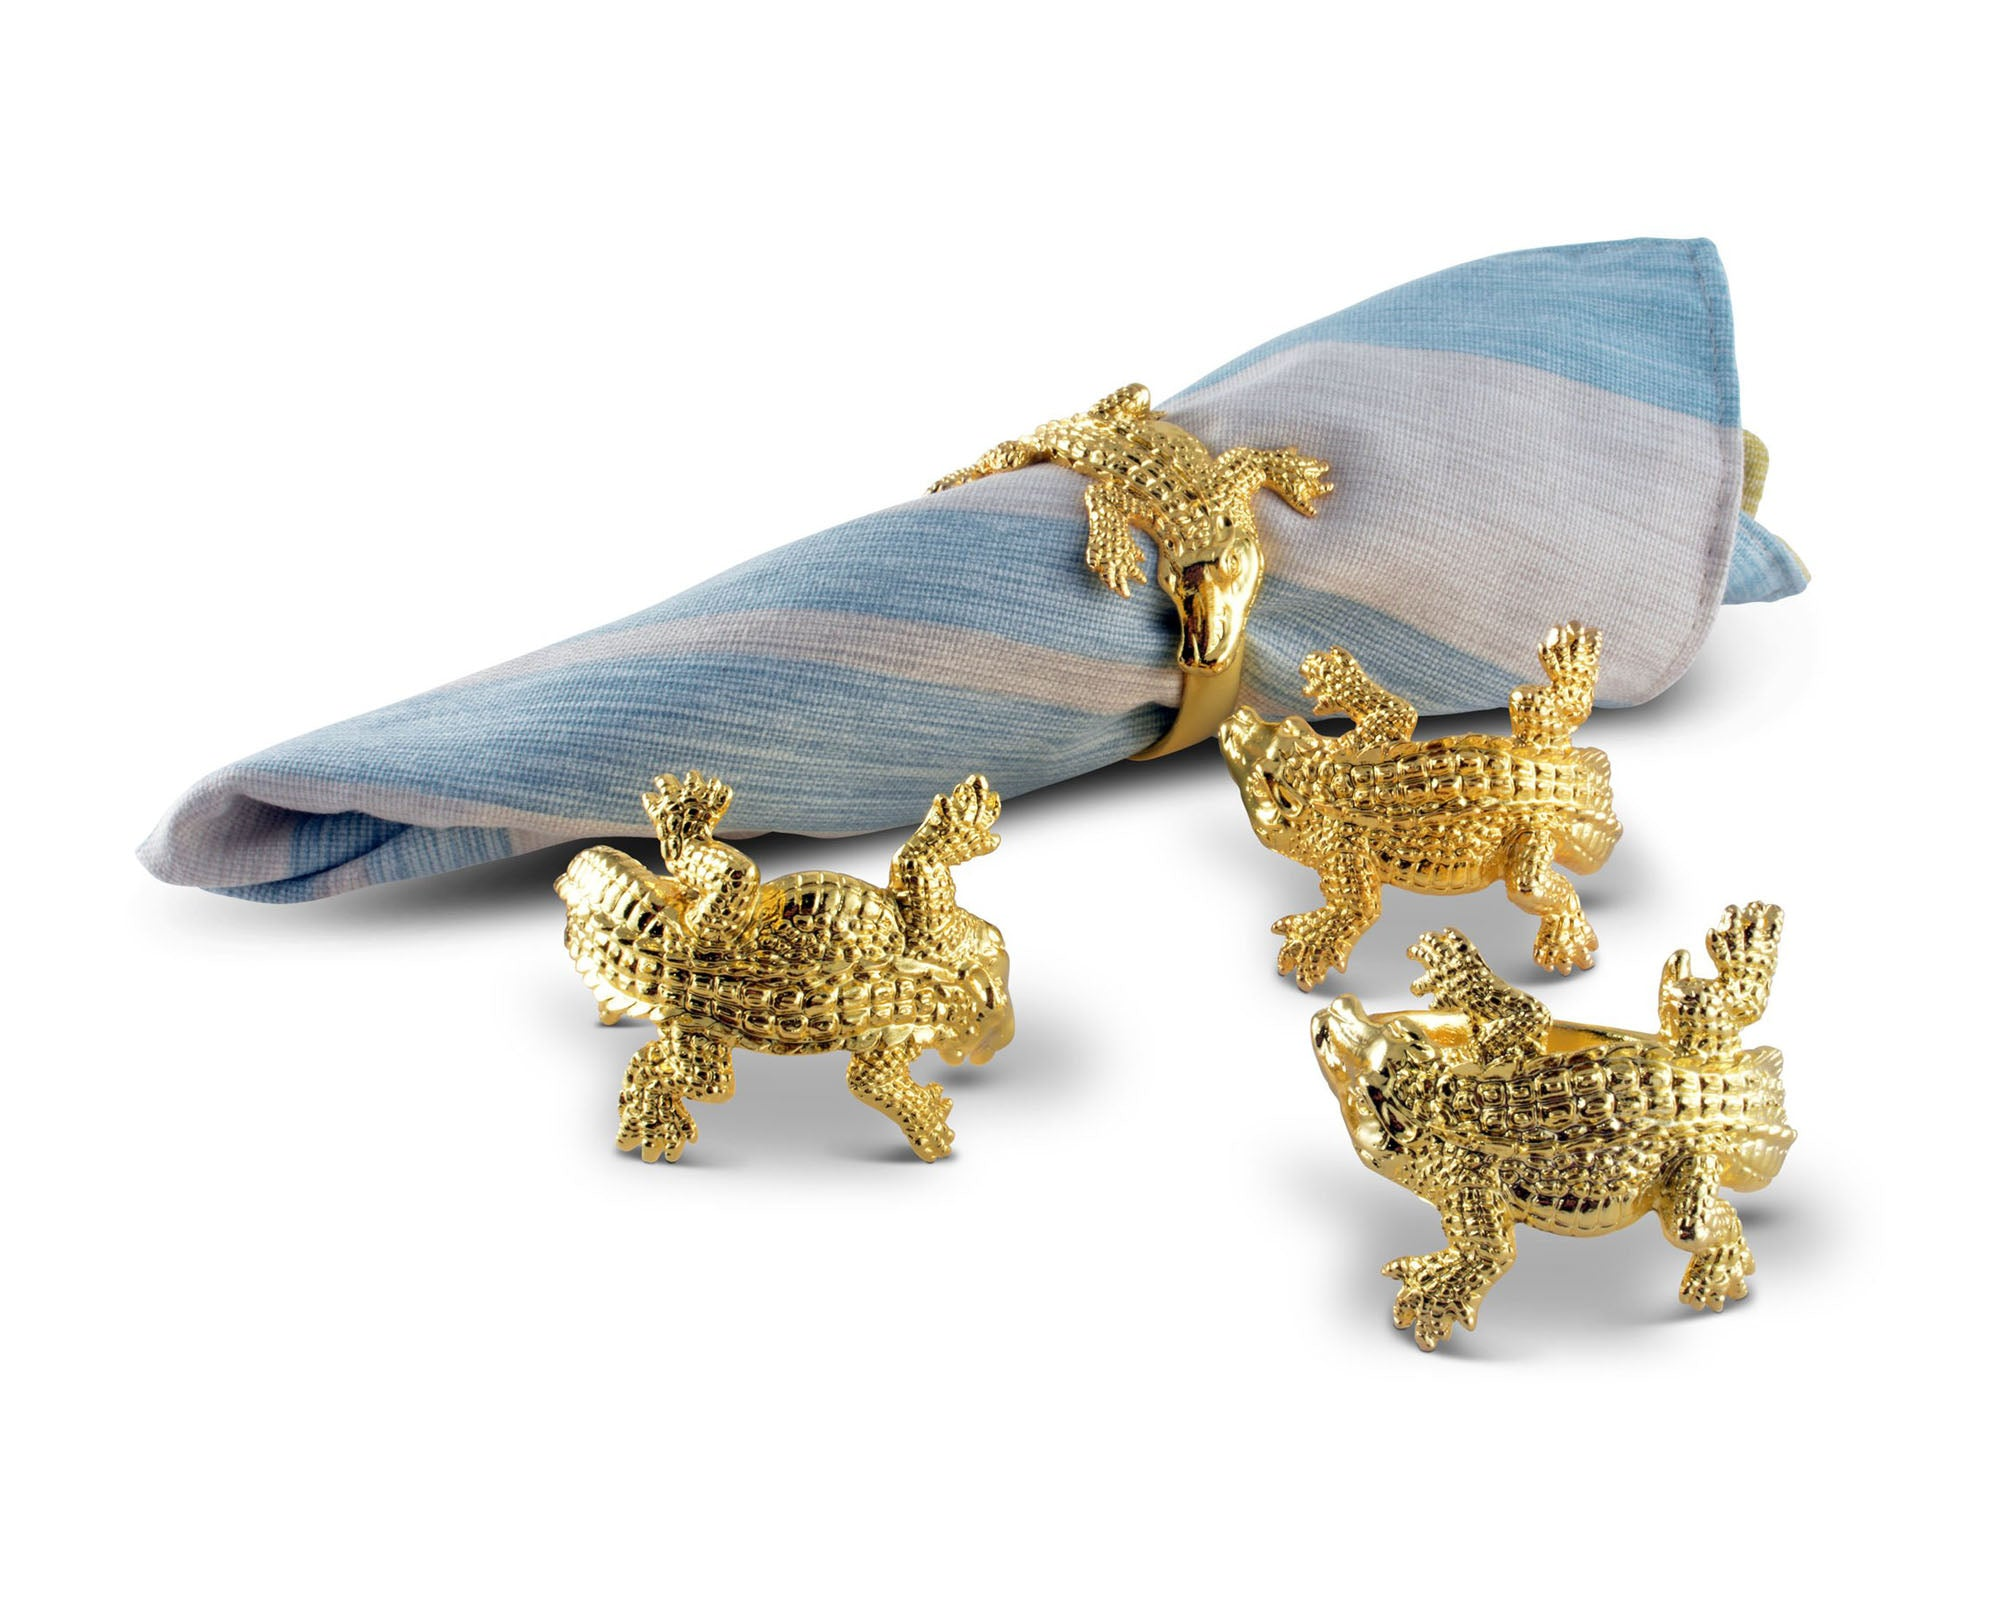 Gold Alligator Napkin Rings